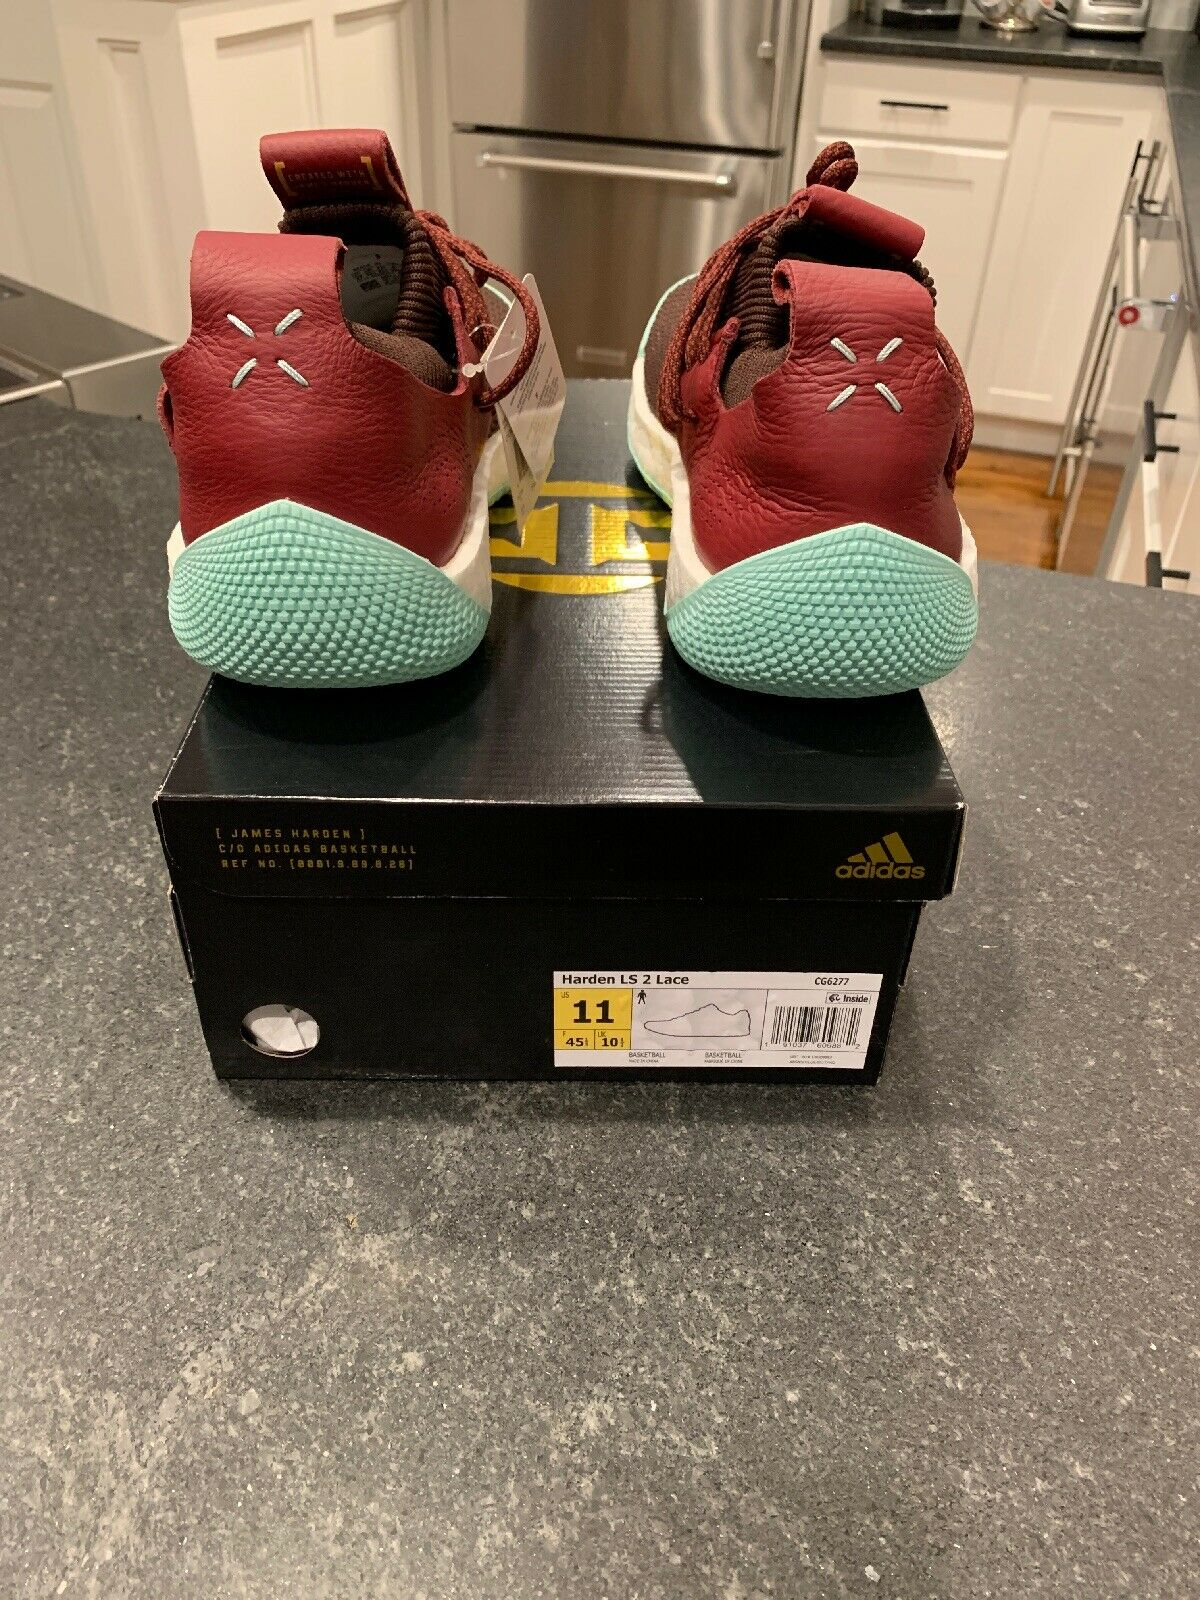 8ac11aaba2c ... Size 11 11 11 NEW ADIDAS HARDEN LS 2 LACE - CG6277 MEN S Red Maroon  Clear ...